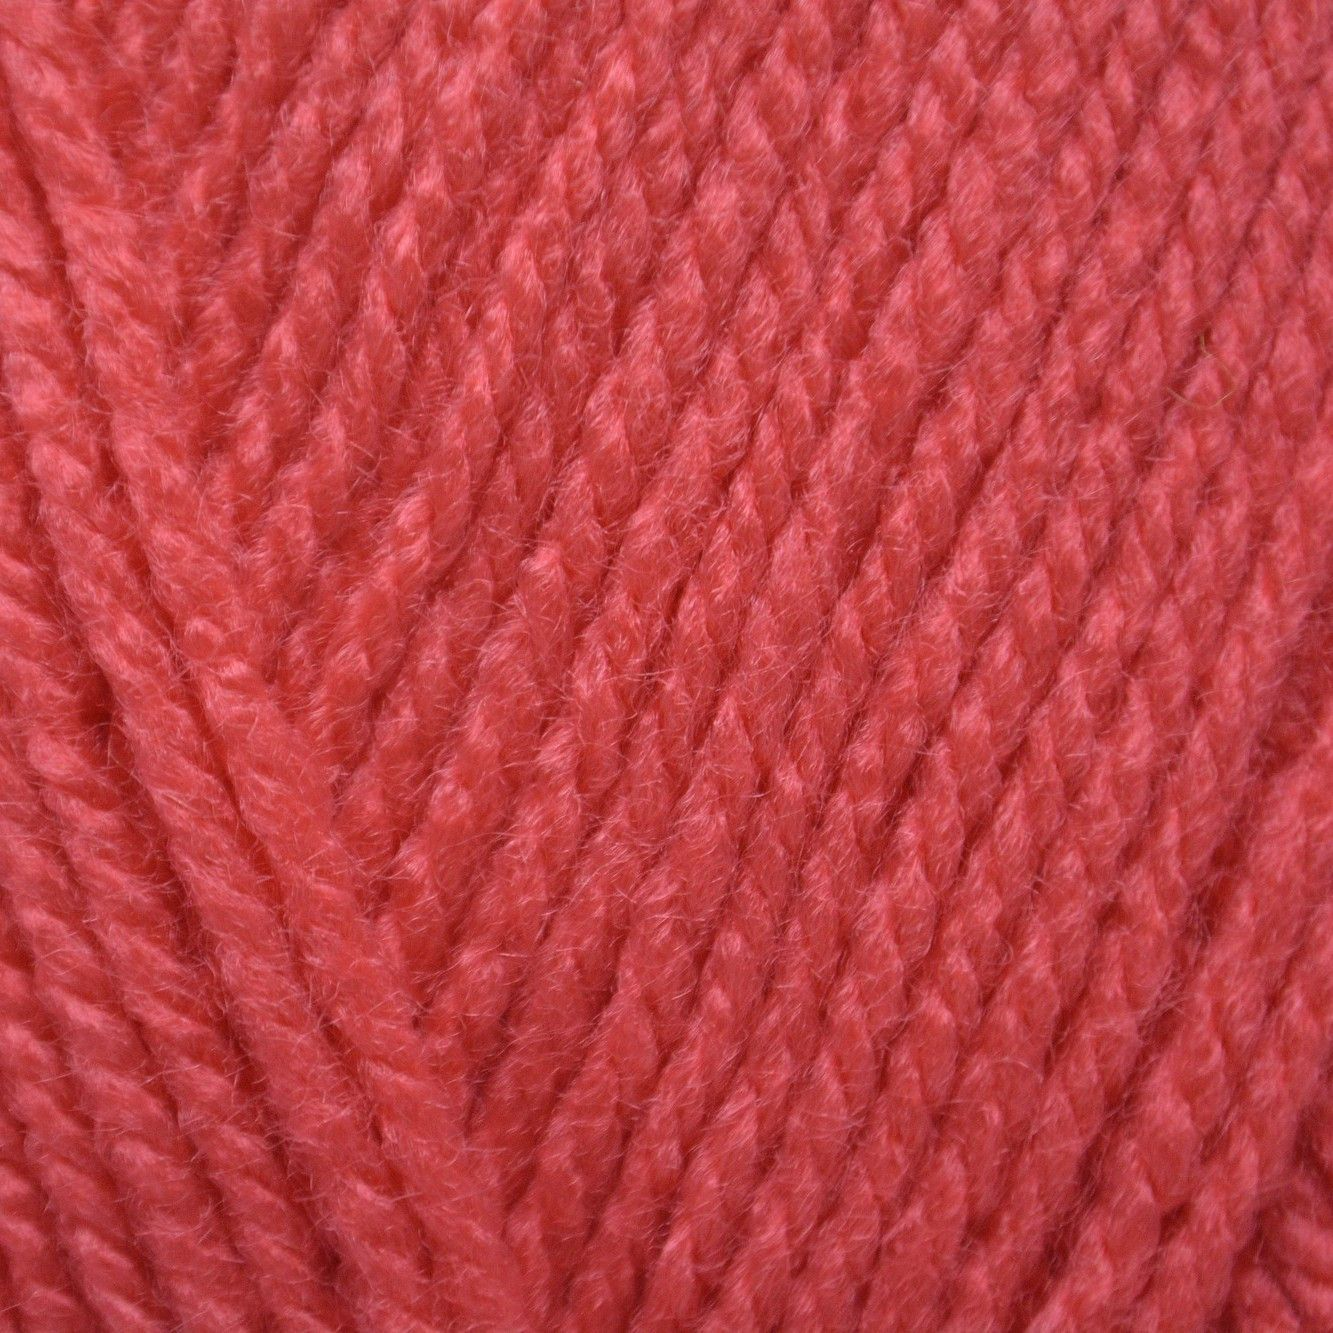 Cygnet Pato Everyday Yarn 100 g pack 22 Colours